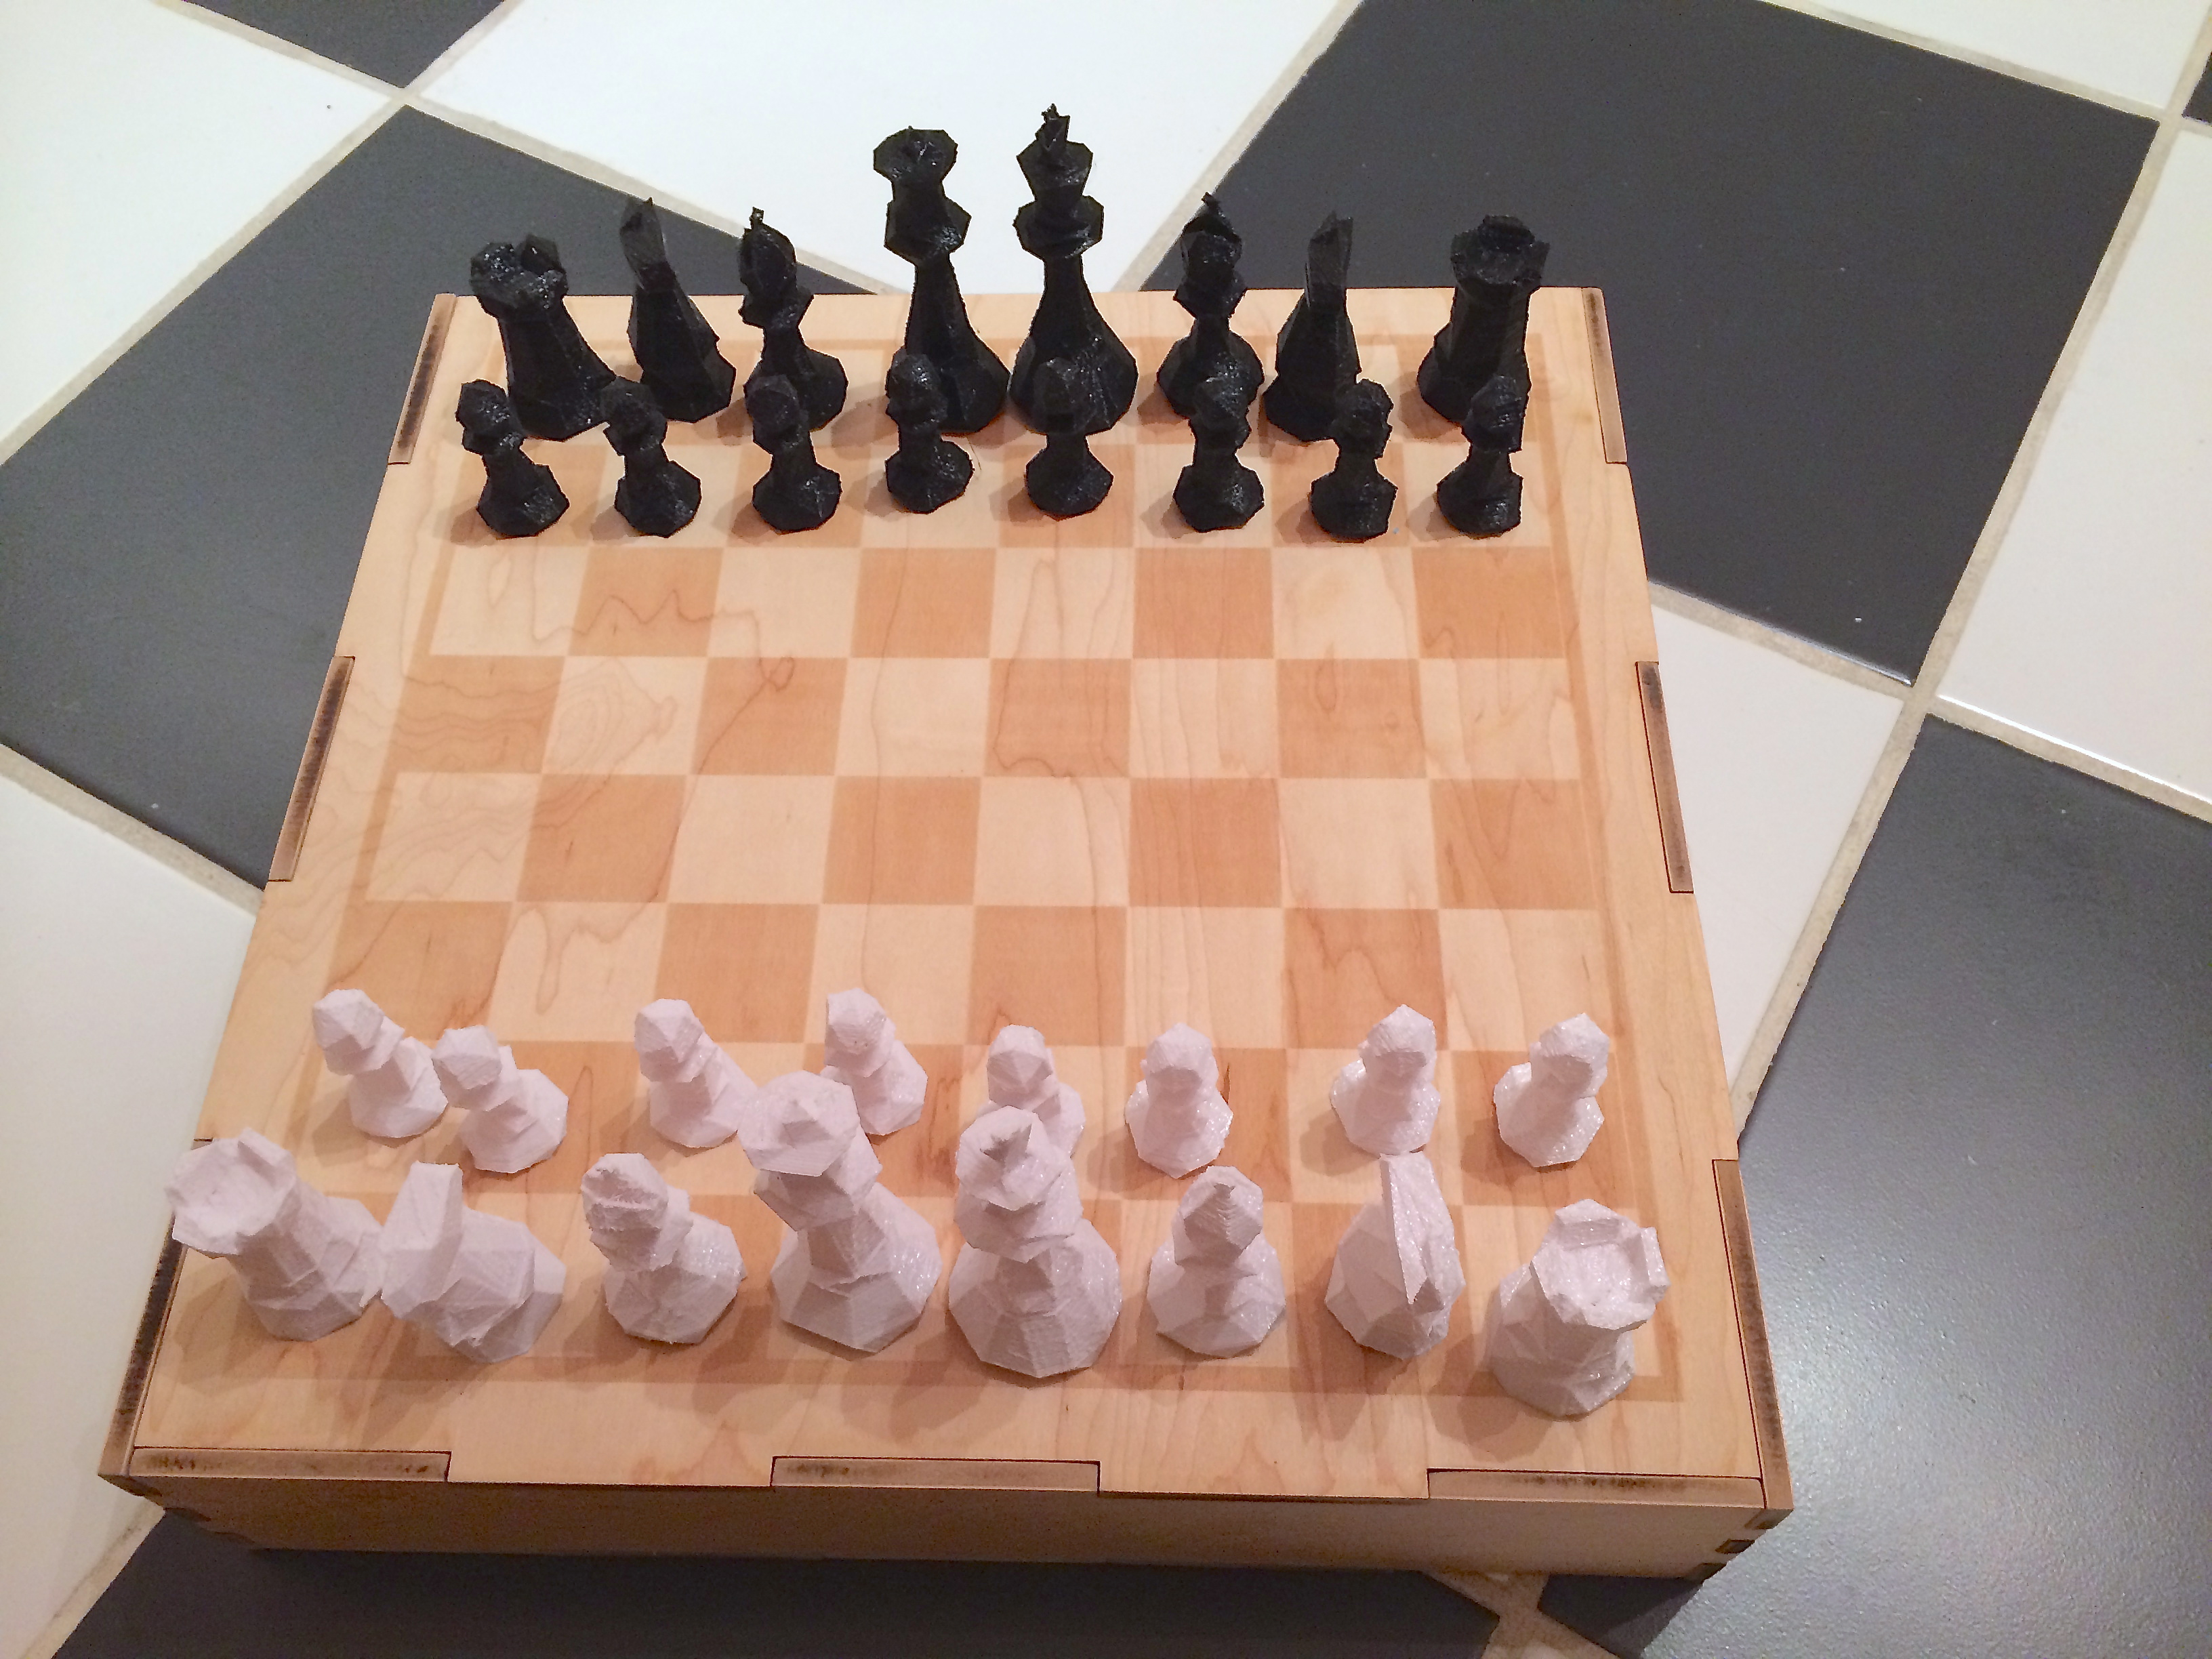 3D printed laser cut DIY chess set